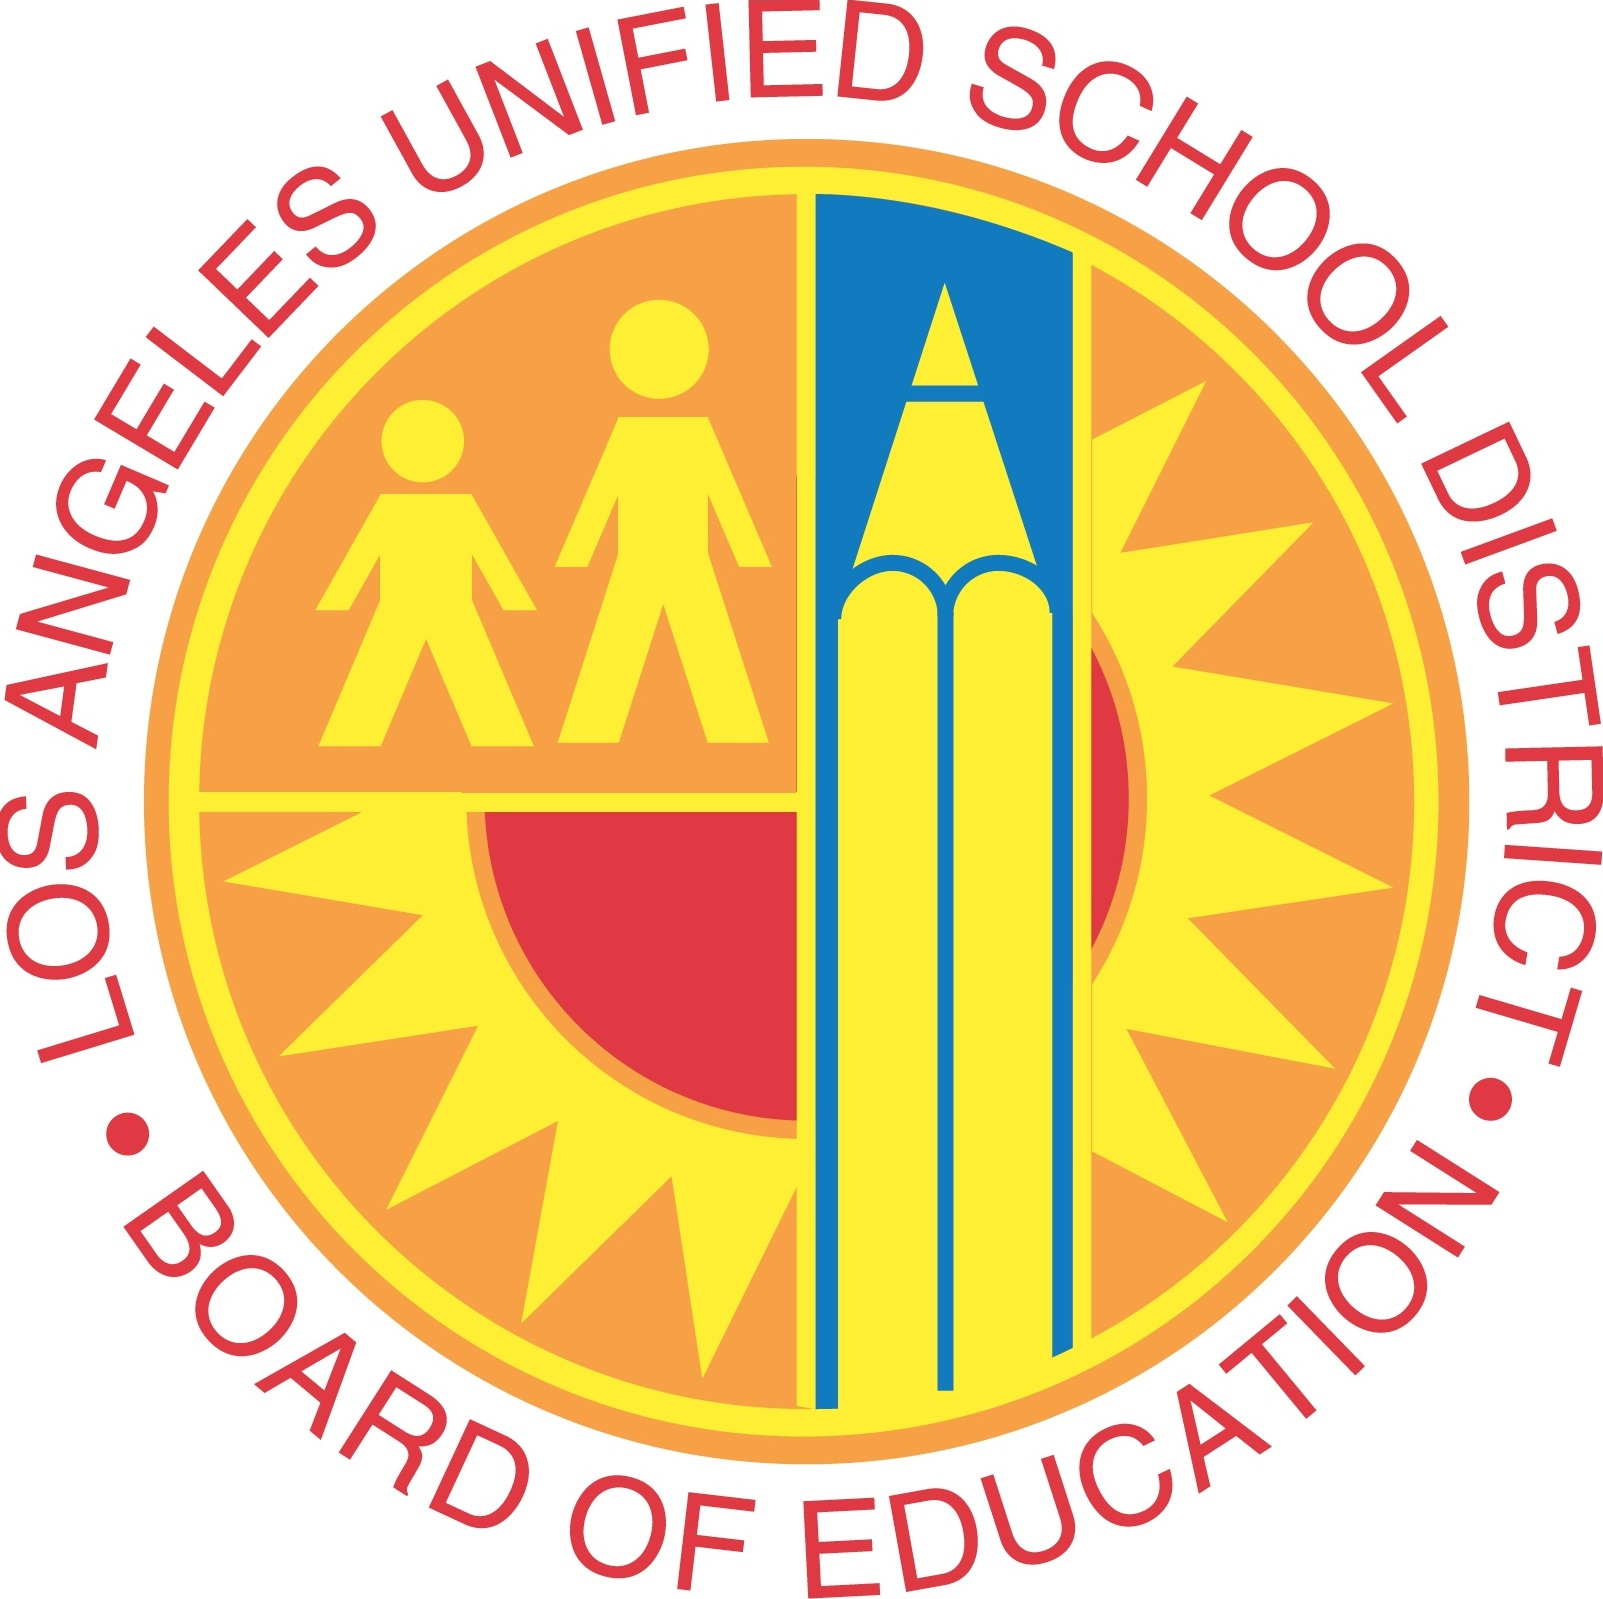 LAUSD logo copy 2